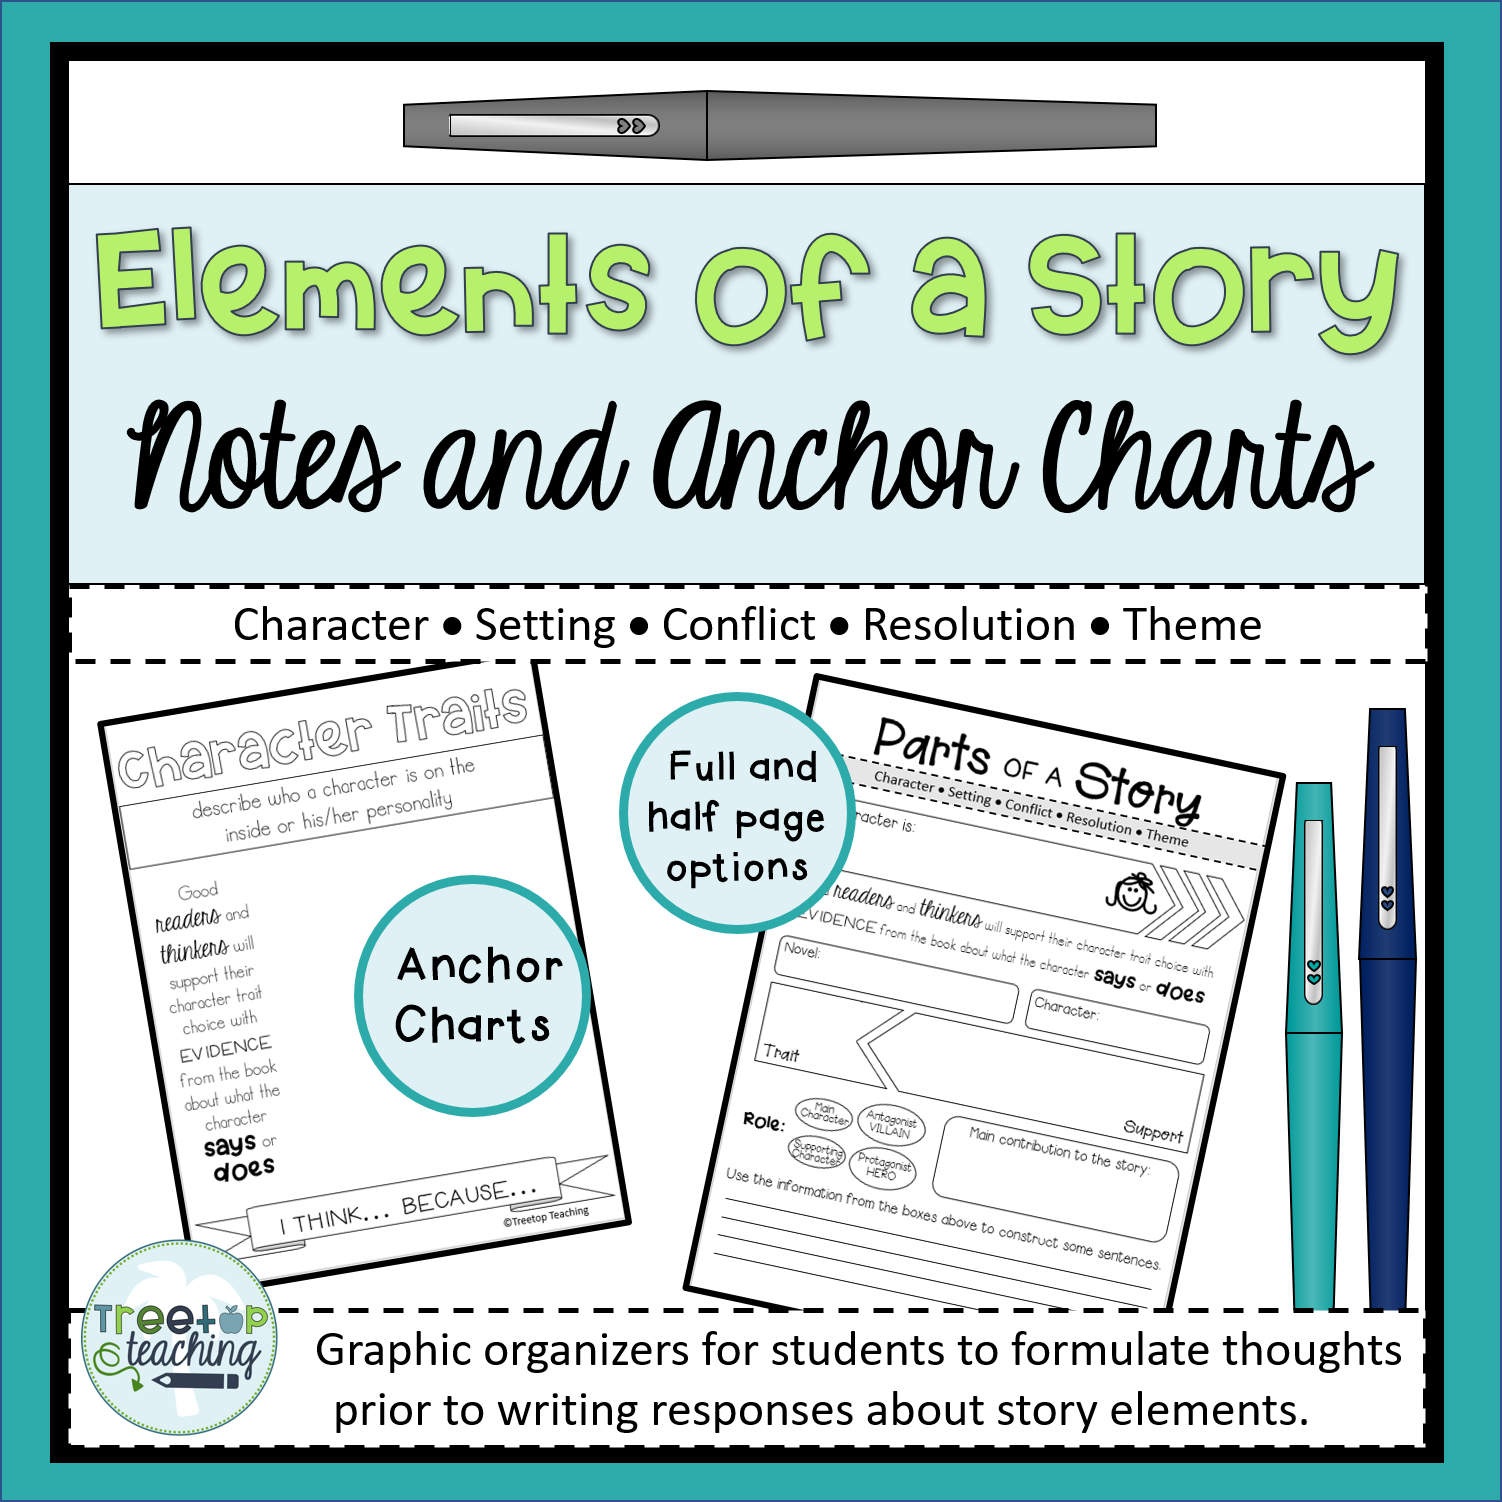 Elements Of A Story Notes